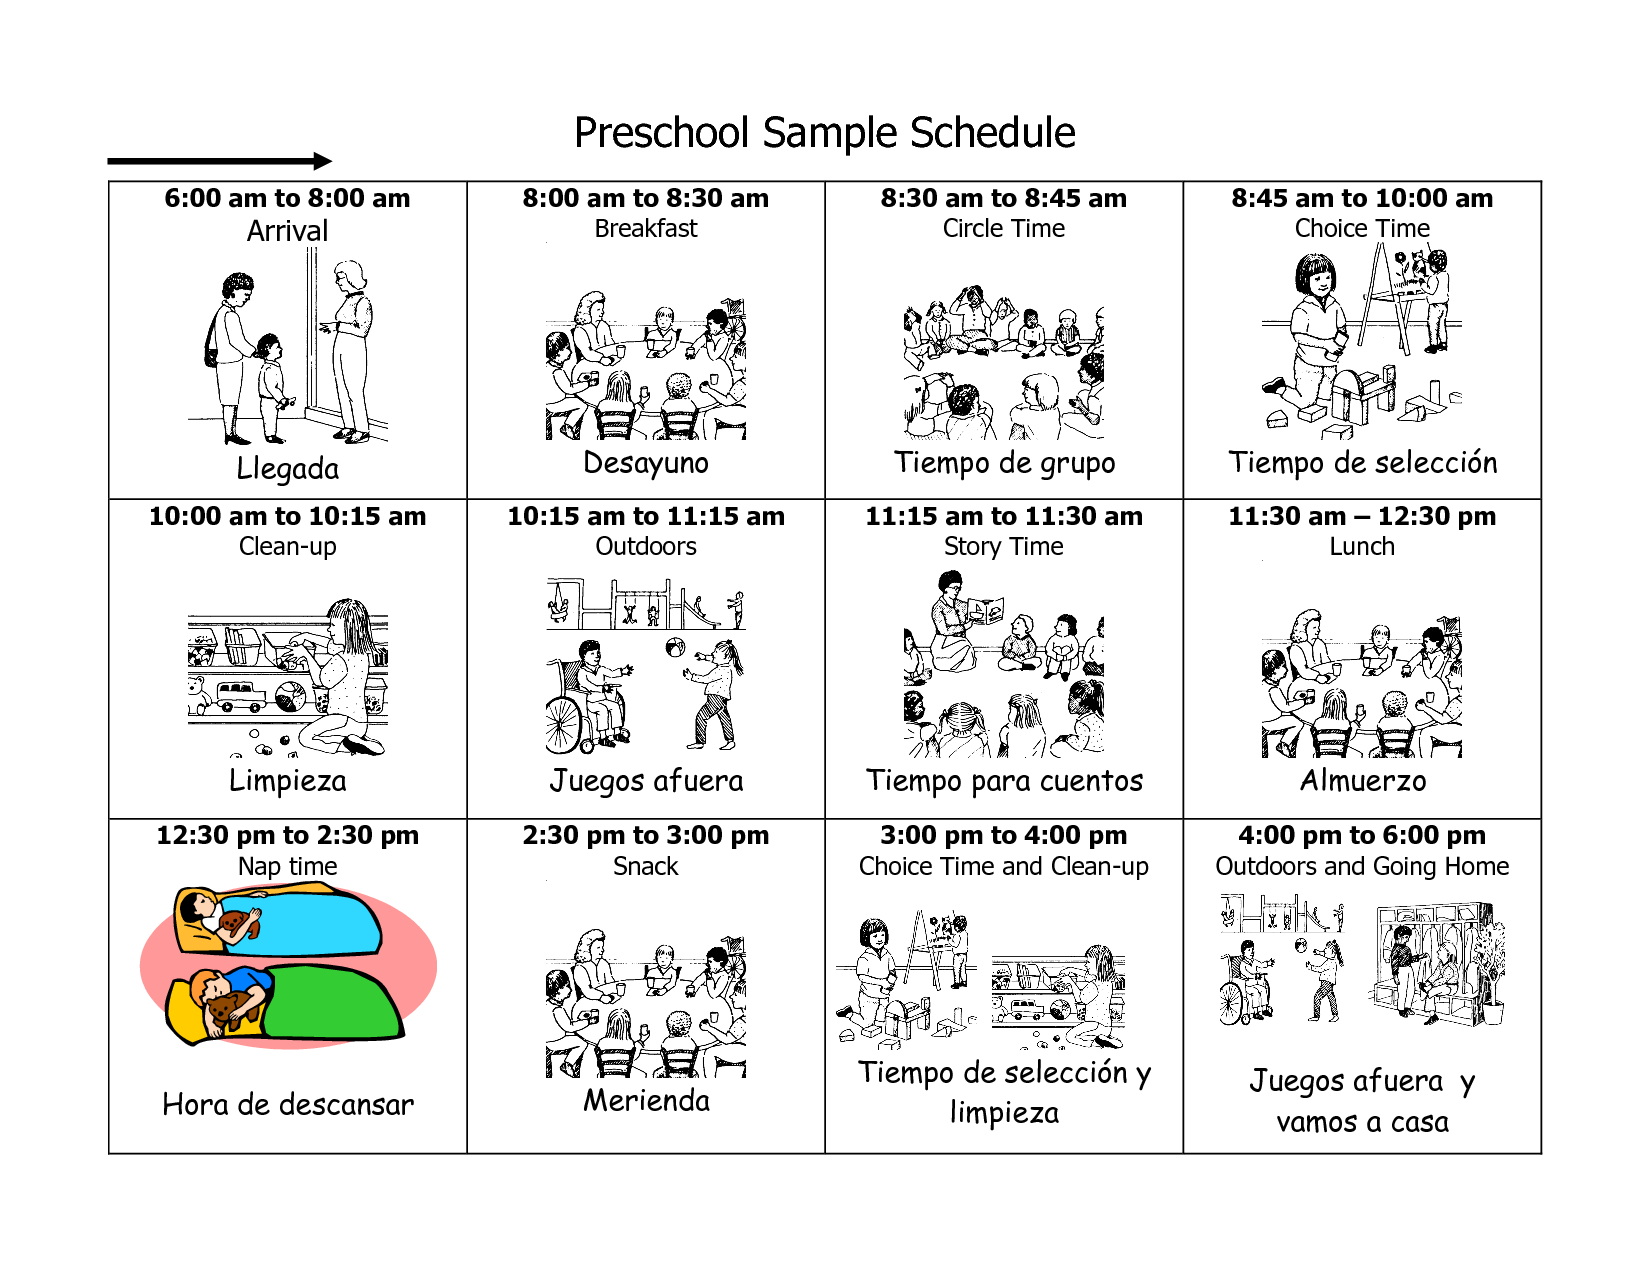 Massif image intended for free printable picture schedule for preschool